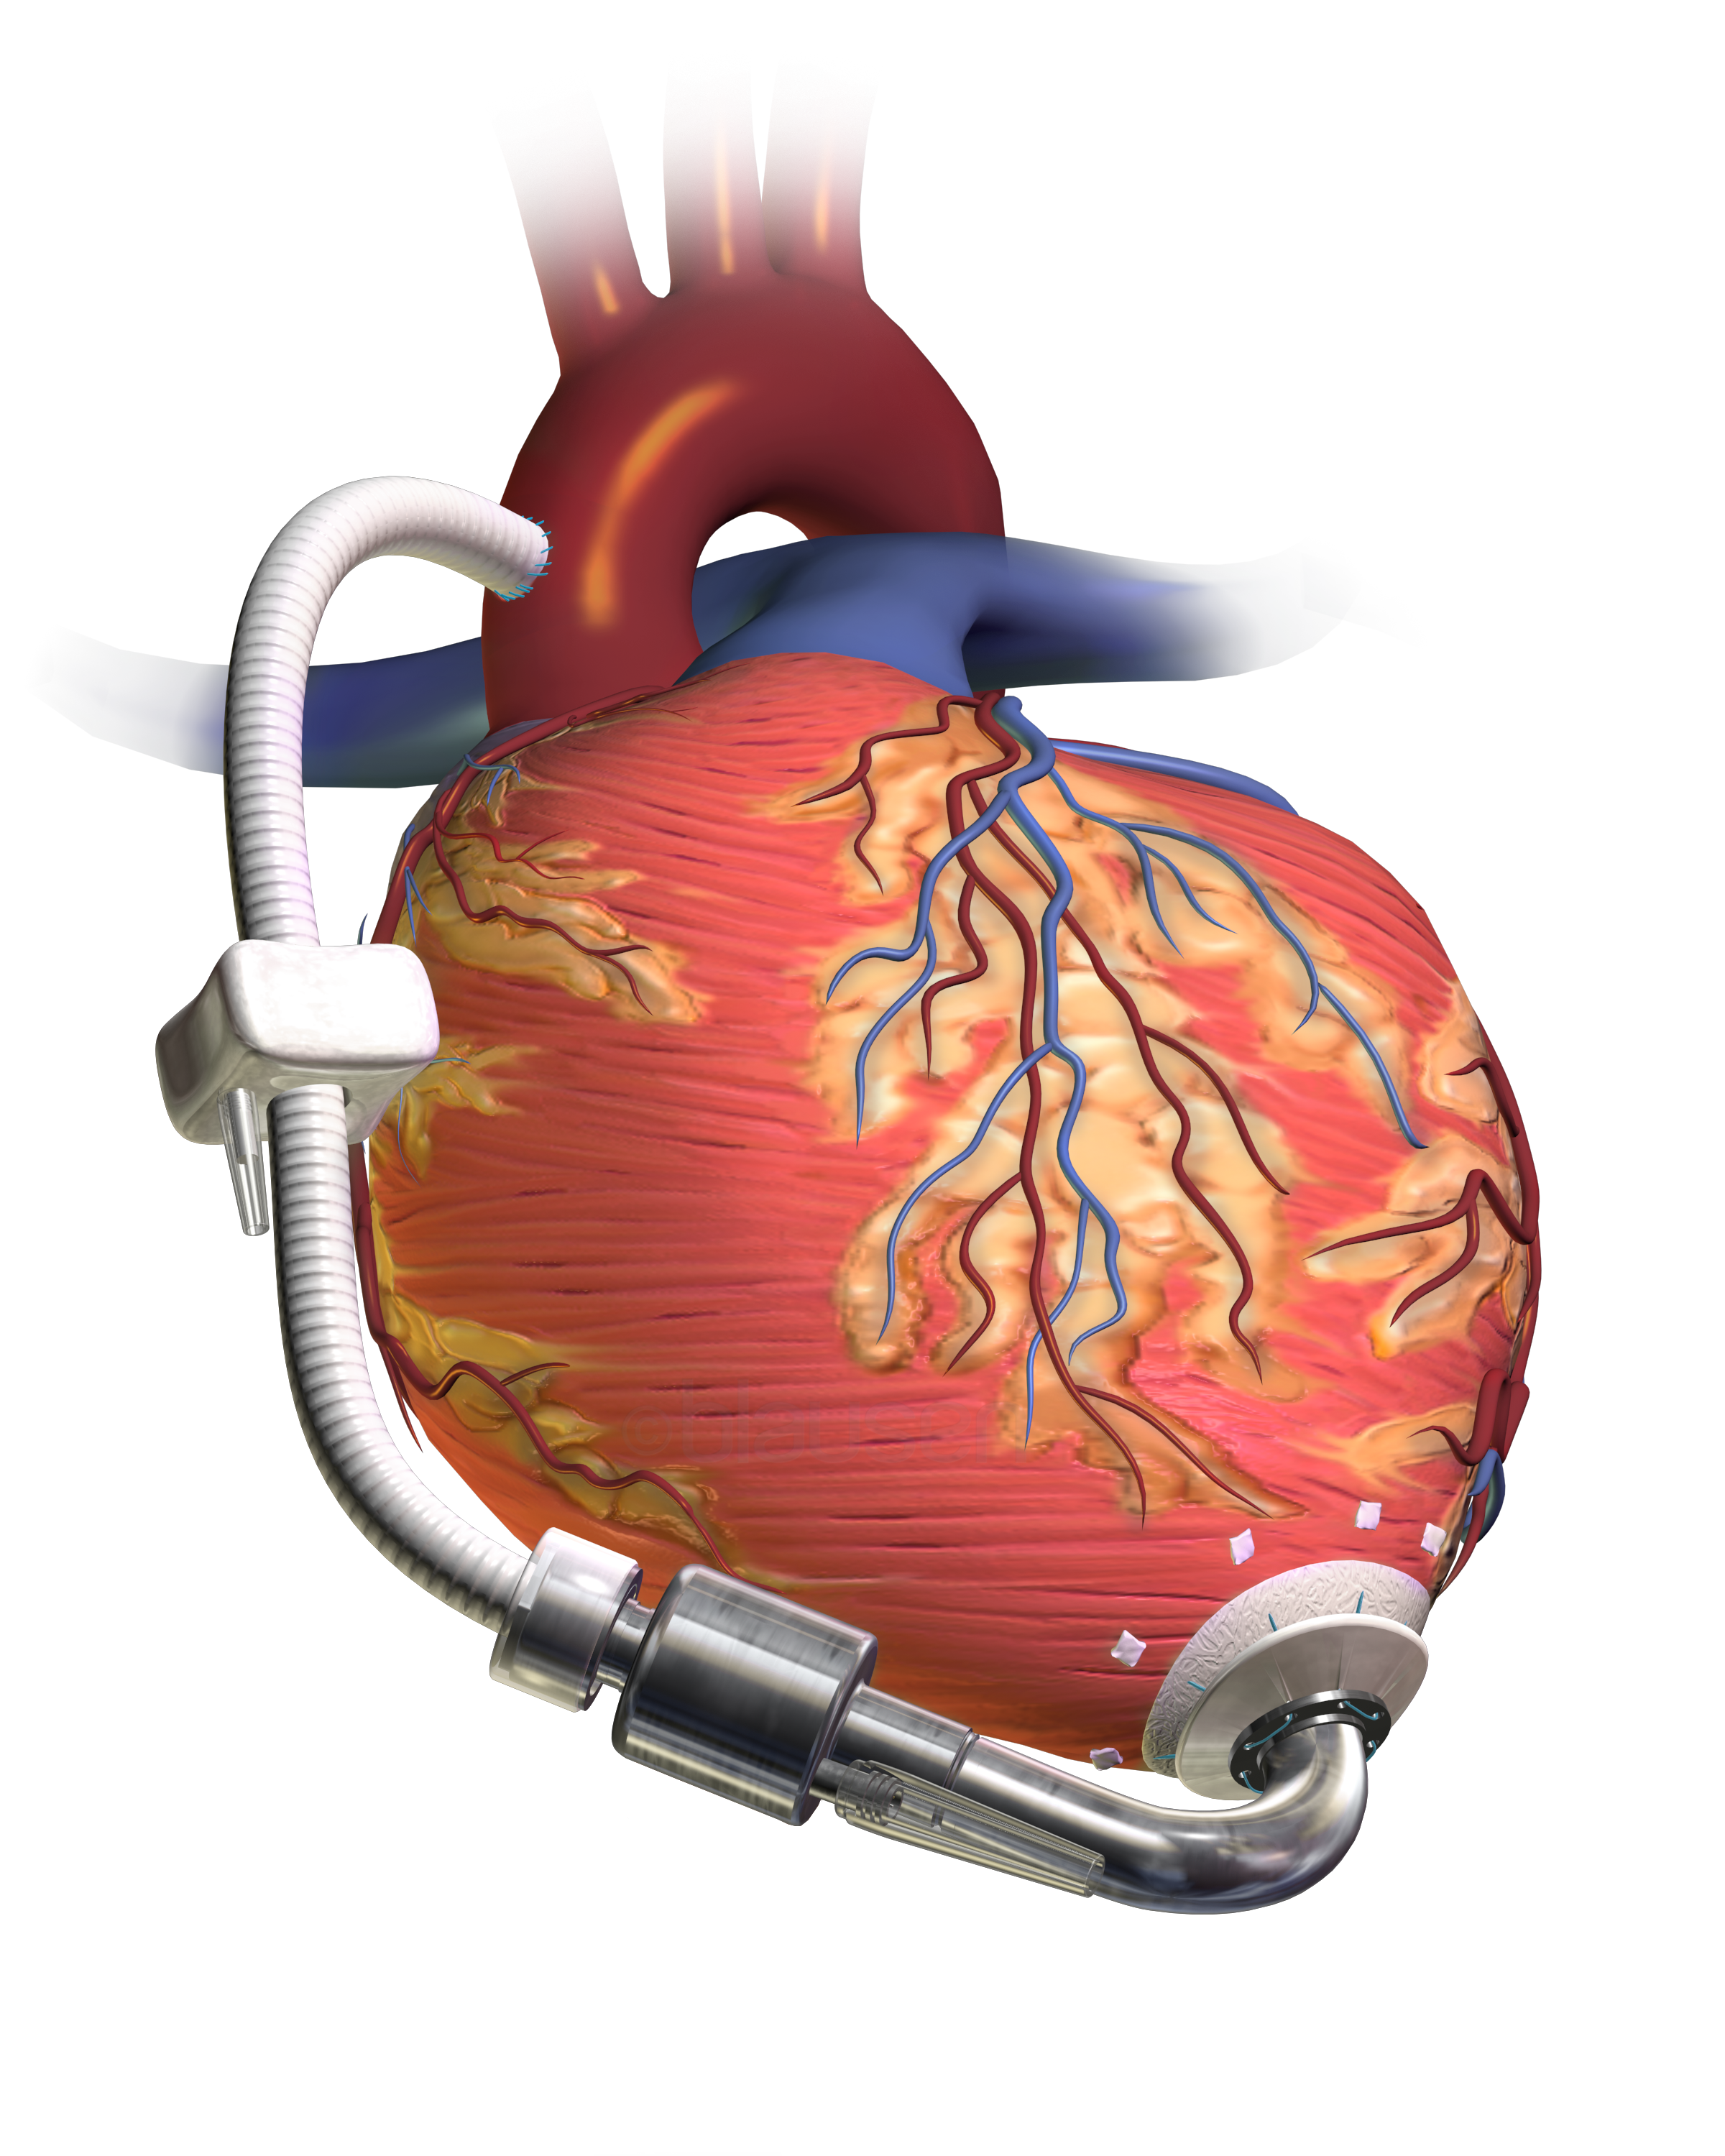 https://upload.wikimedia.org/wikipedia/commons/5/56/Blausen_0621_LVAD.png